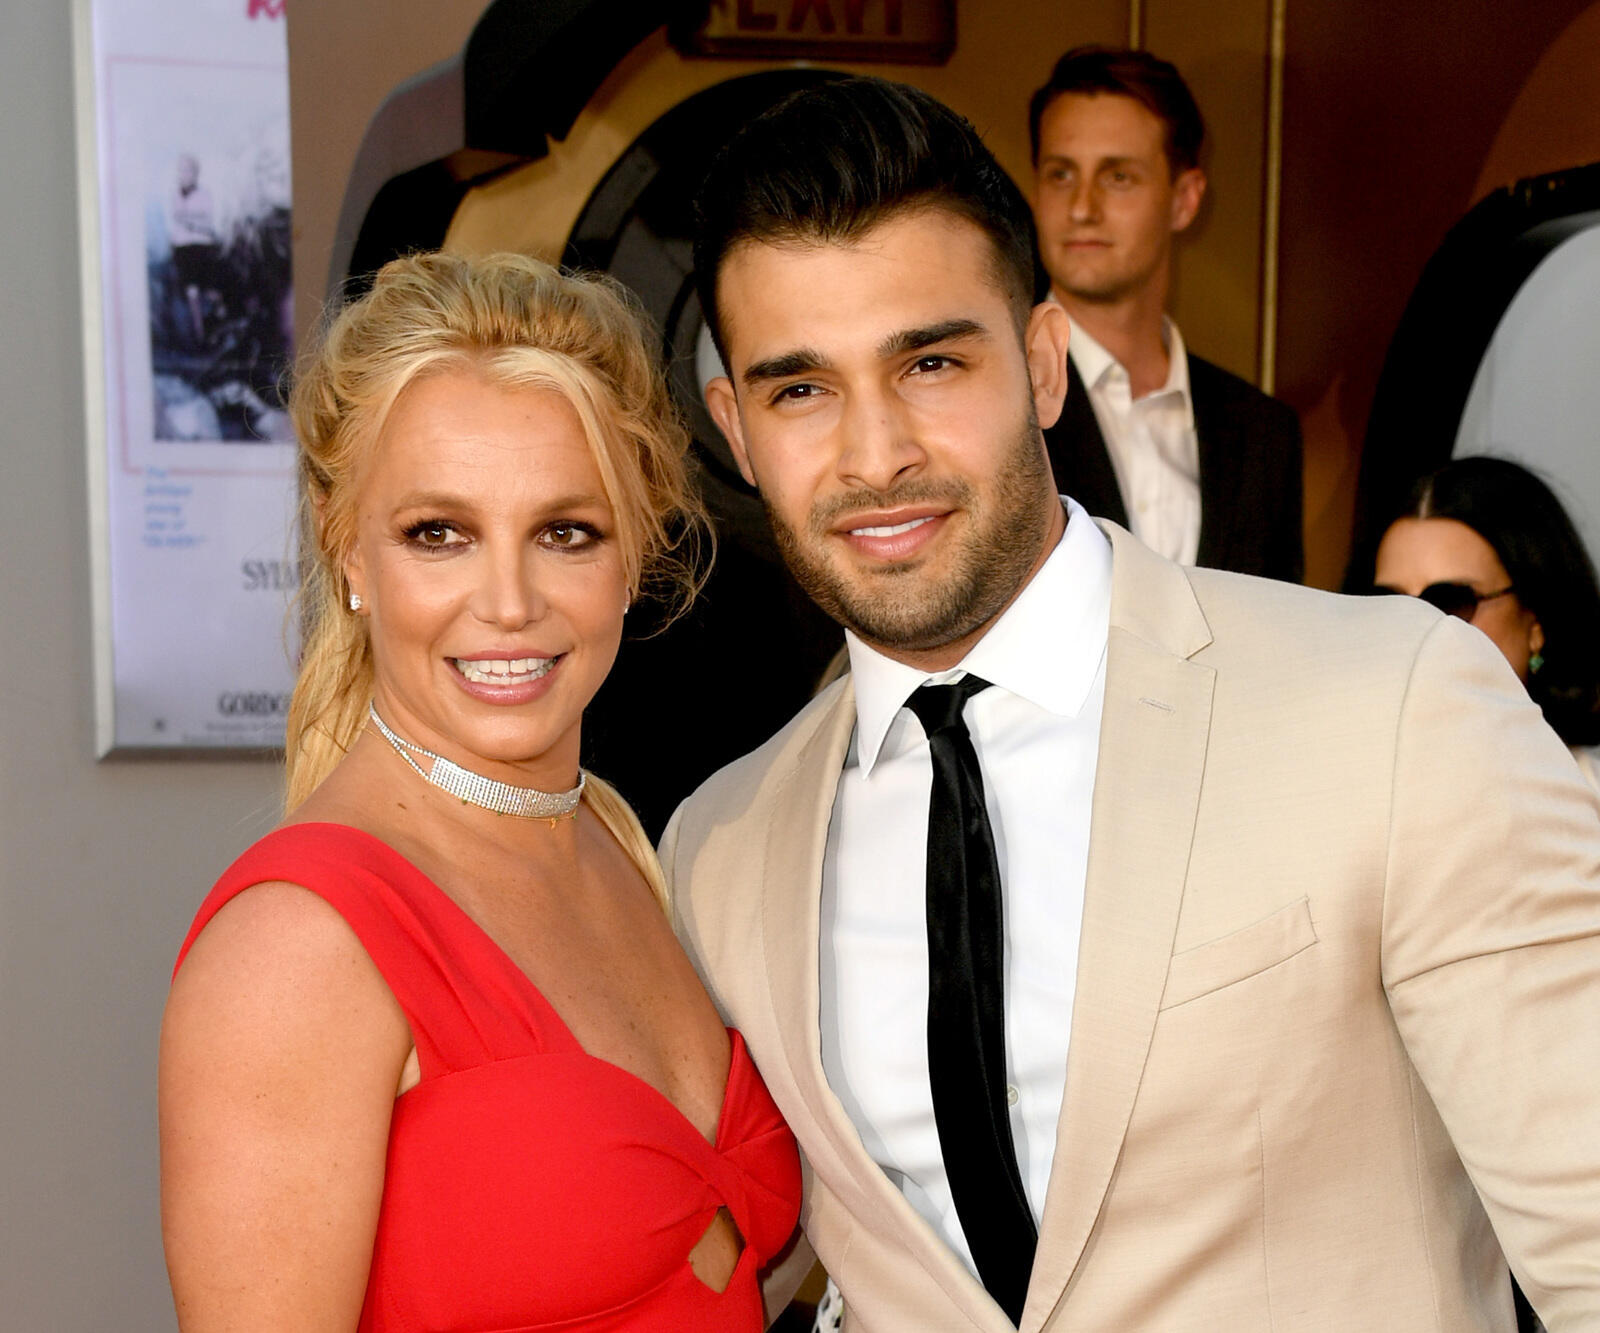 259: 08/26/21 - Britney Spears Shares Selfie With Beau Sam Asghari—Thanks Him For Being There During 'The Hardest Years' Of Her Life